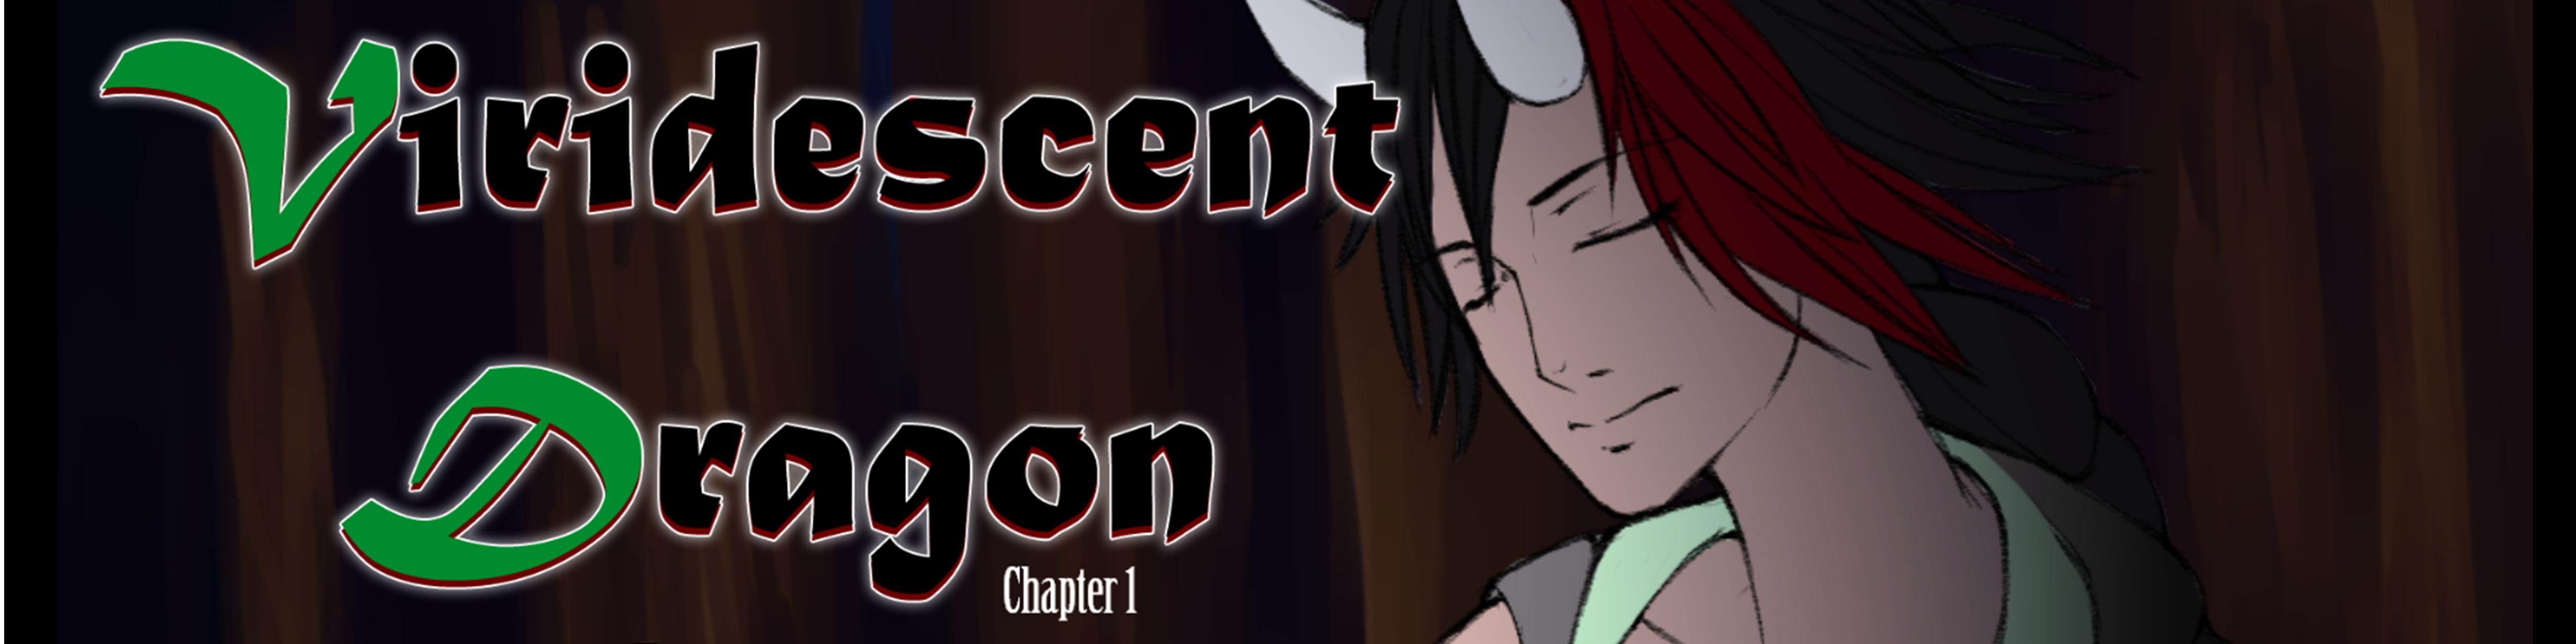 Viridescent Dragon: Chapter 1